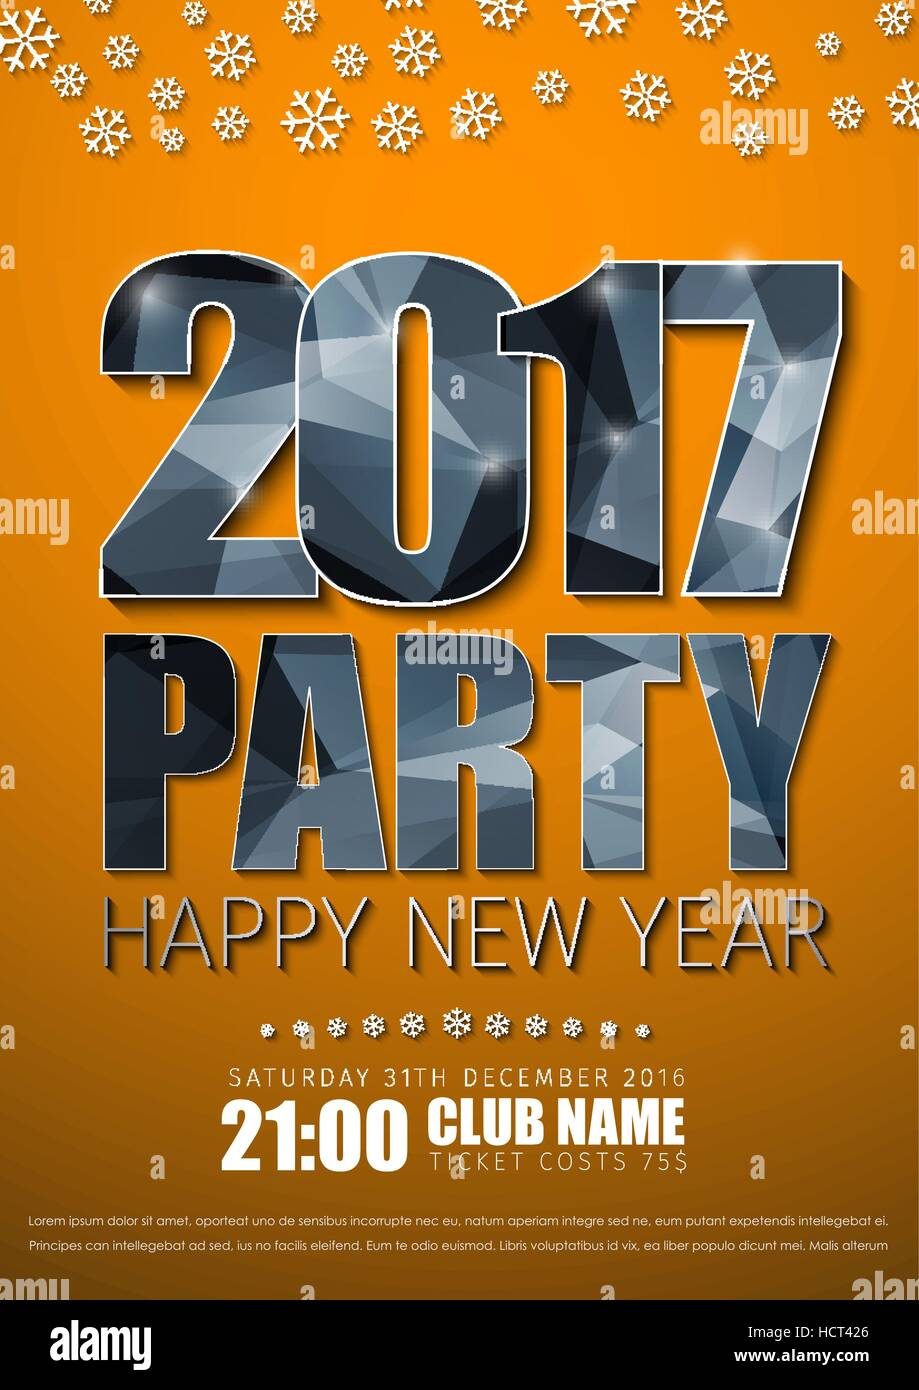 Poster design keywords - Poster Design For The New Year S Party In 2017 Orange Flyer Template With Silver